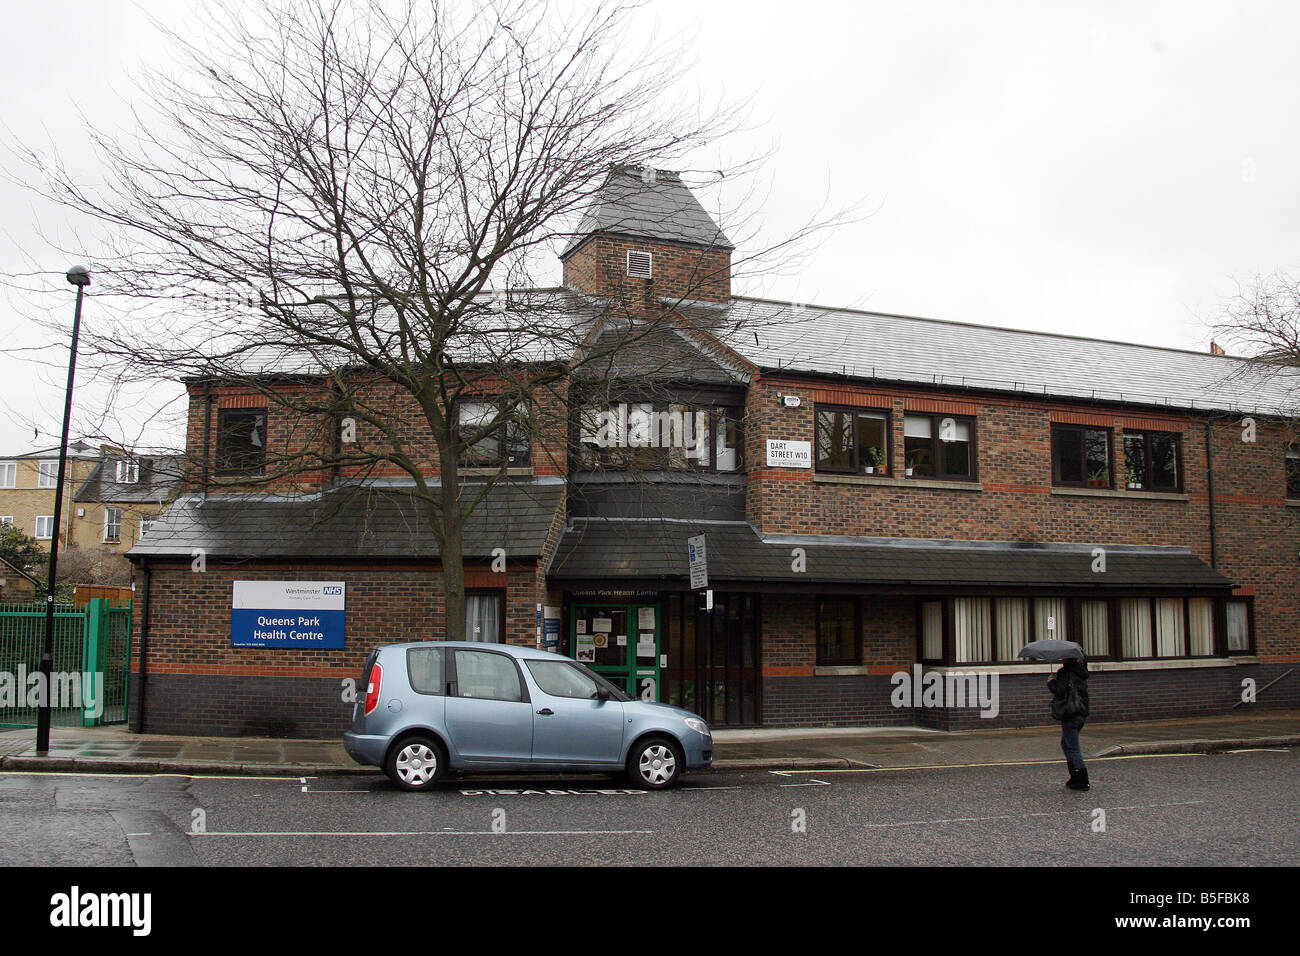 PIC JASON SHILLINGFORD 28 03 08 IN PIC IS THE QUEEN S PARK HEALTH CENTRE WERE A 14 YEAR OLD BOY STAGGERED INTO ON - Stock Image